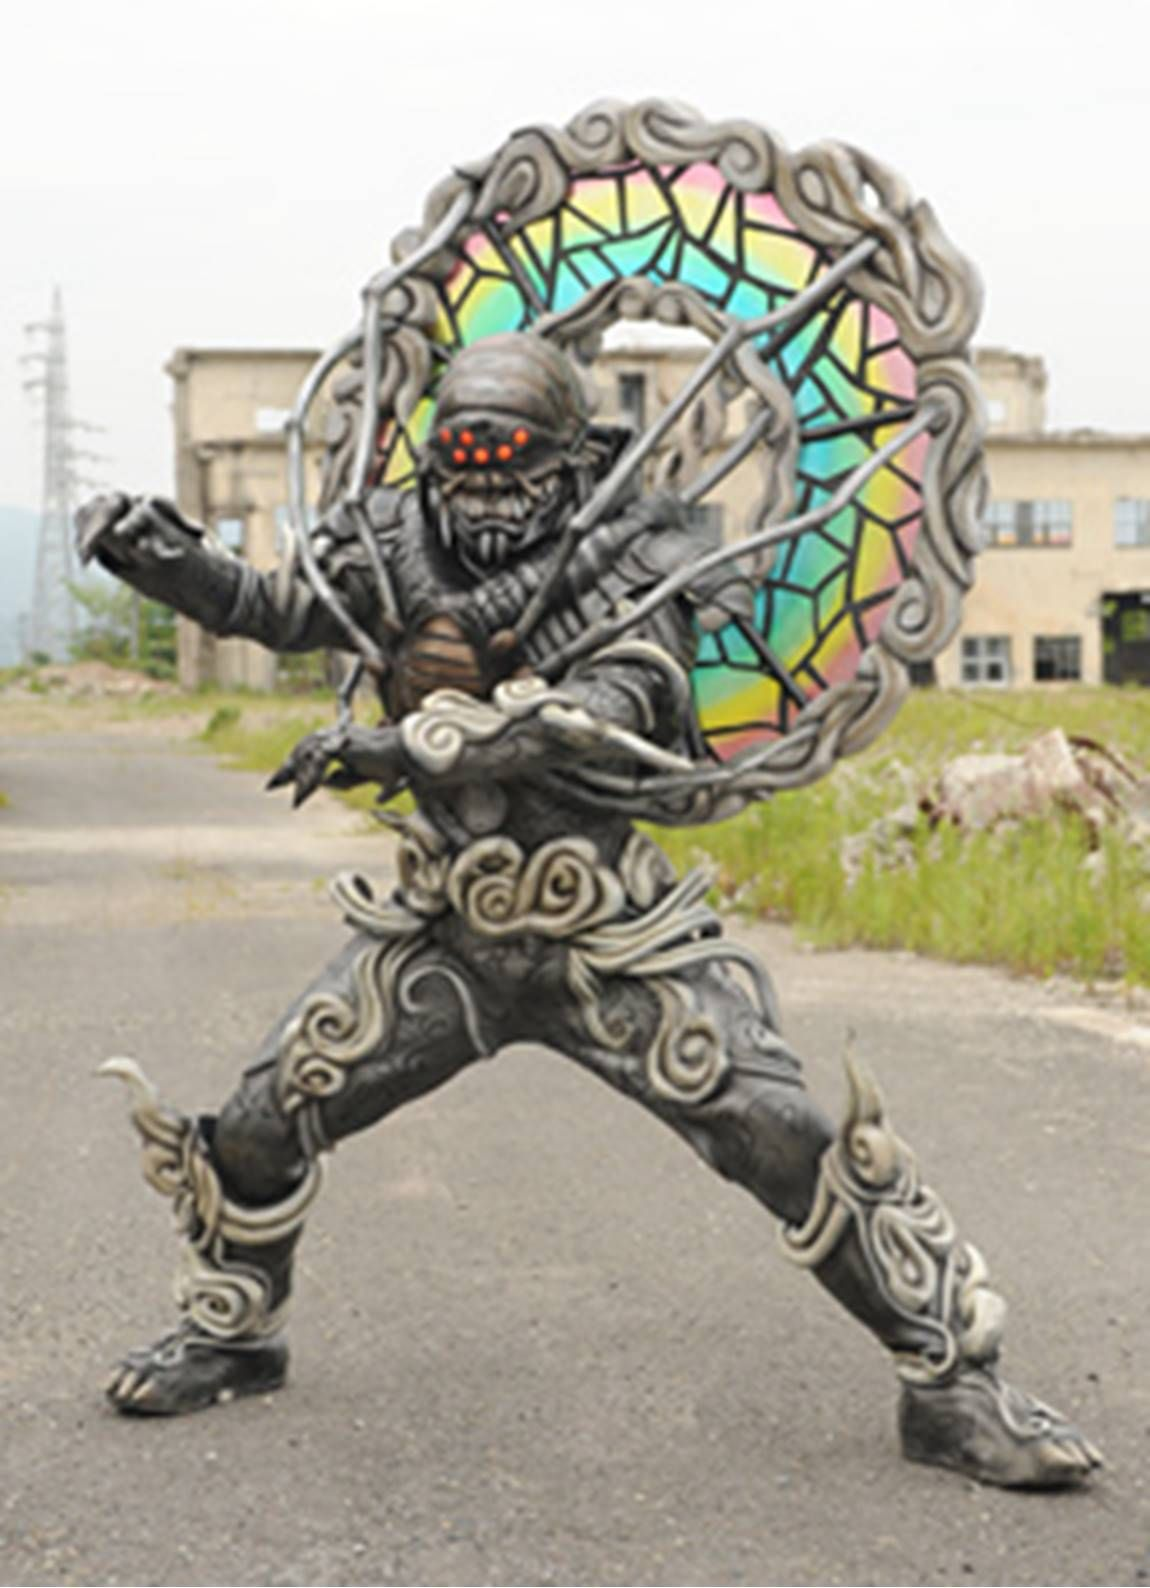 I searched for power rangers megaforce distractor images on Bing and ...